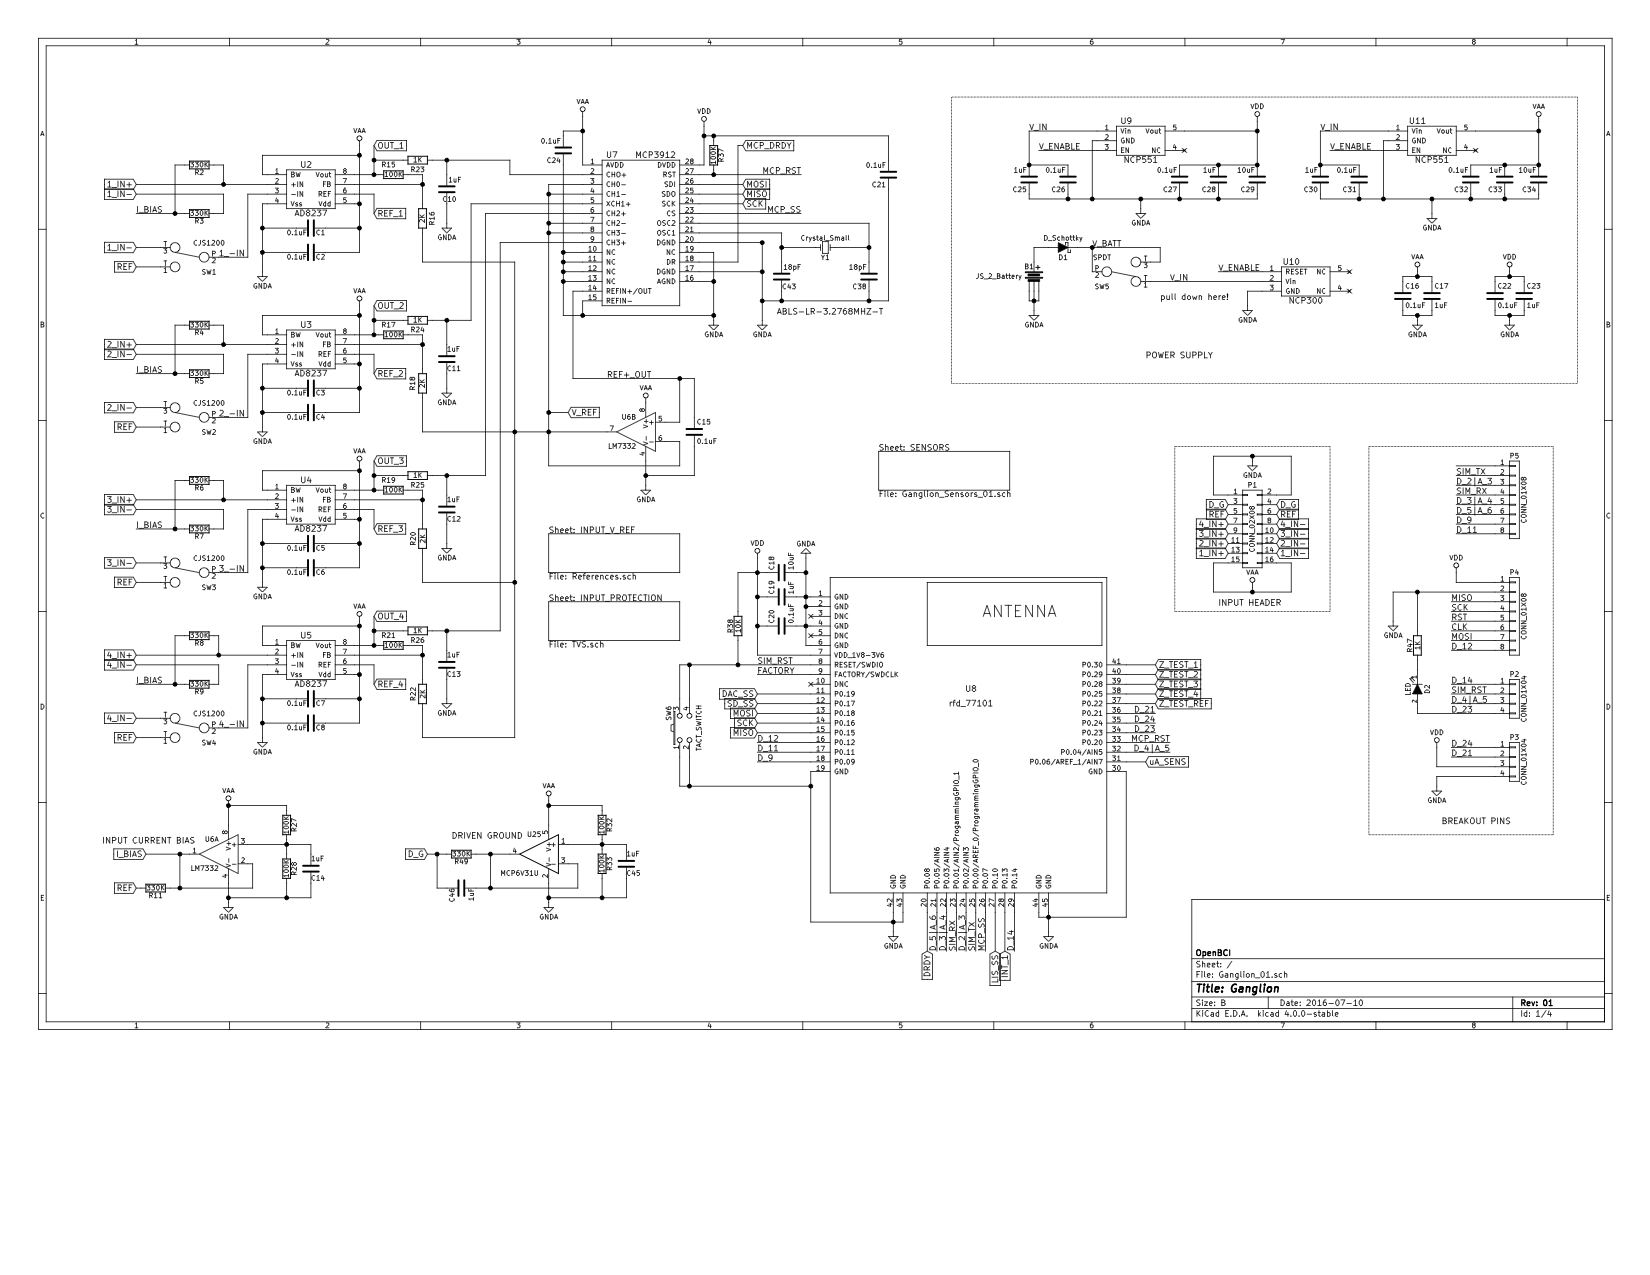 ganglion_schematic openbci ganglion openbci documentation bci bus wiring diagram at honlapkeszites.co